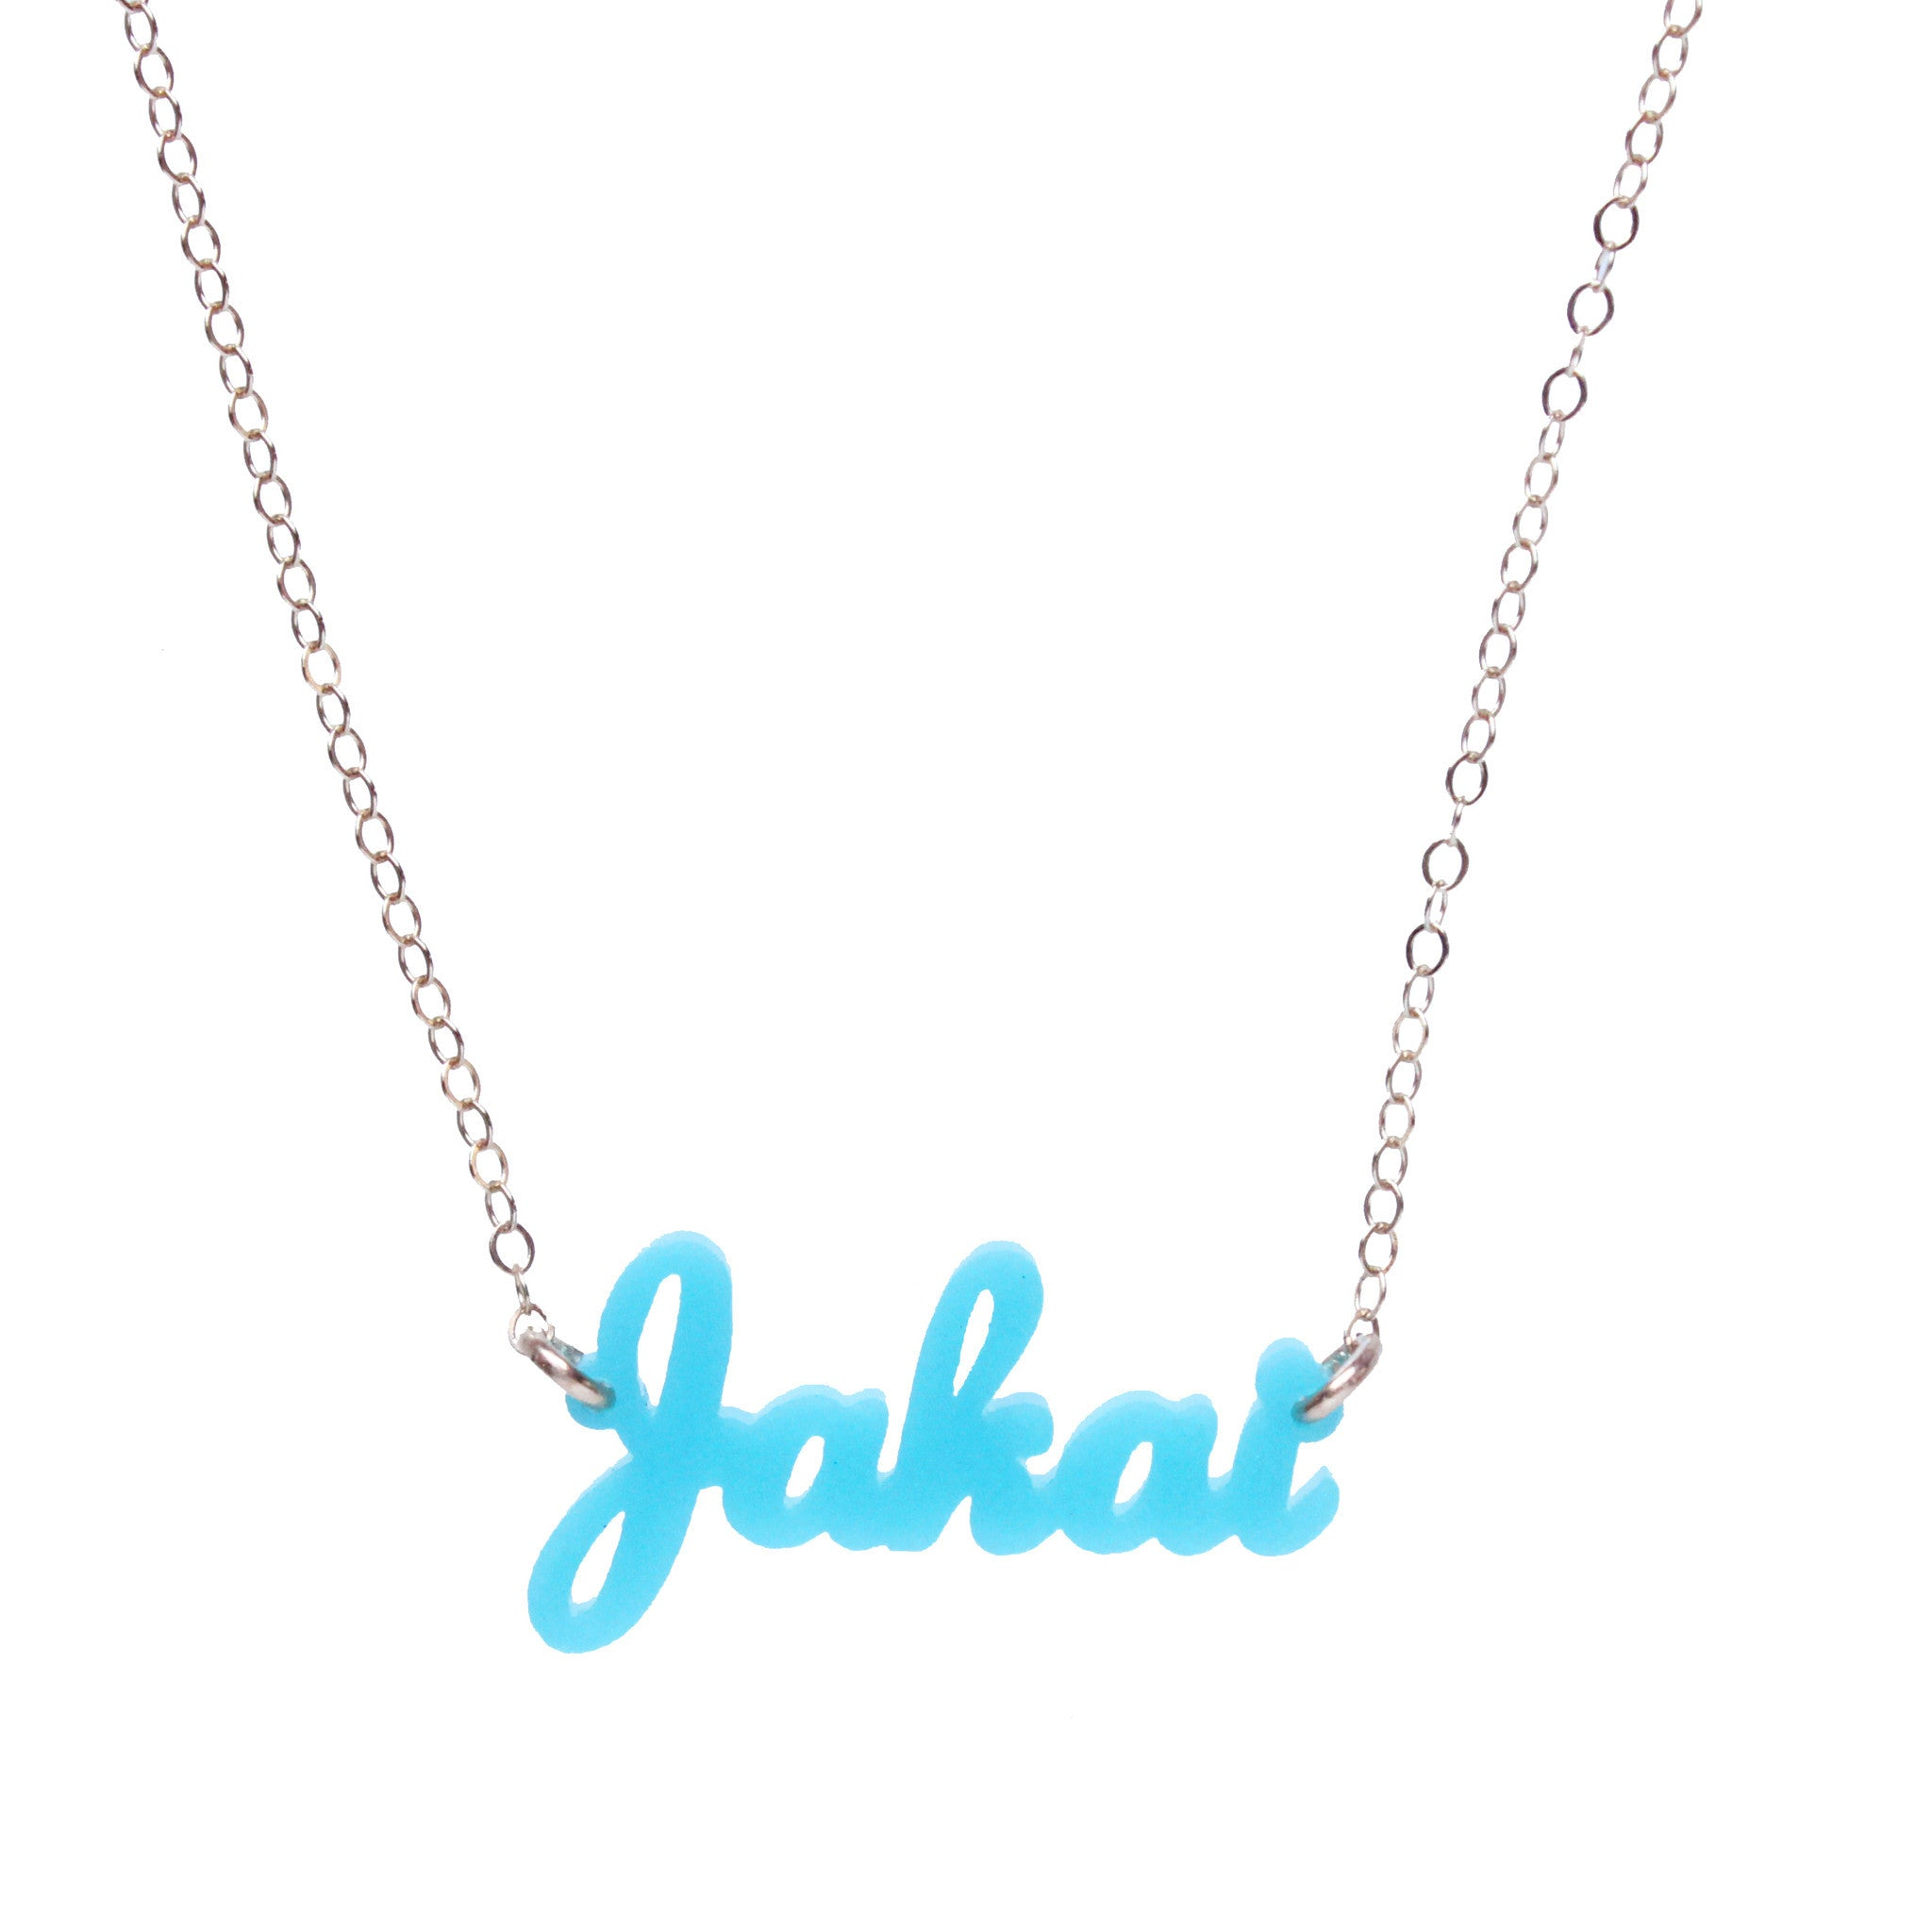 name infinity cursive necklace style styles names of caymancode chain k